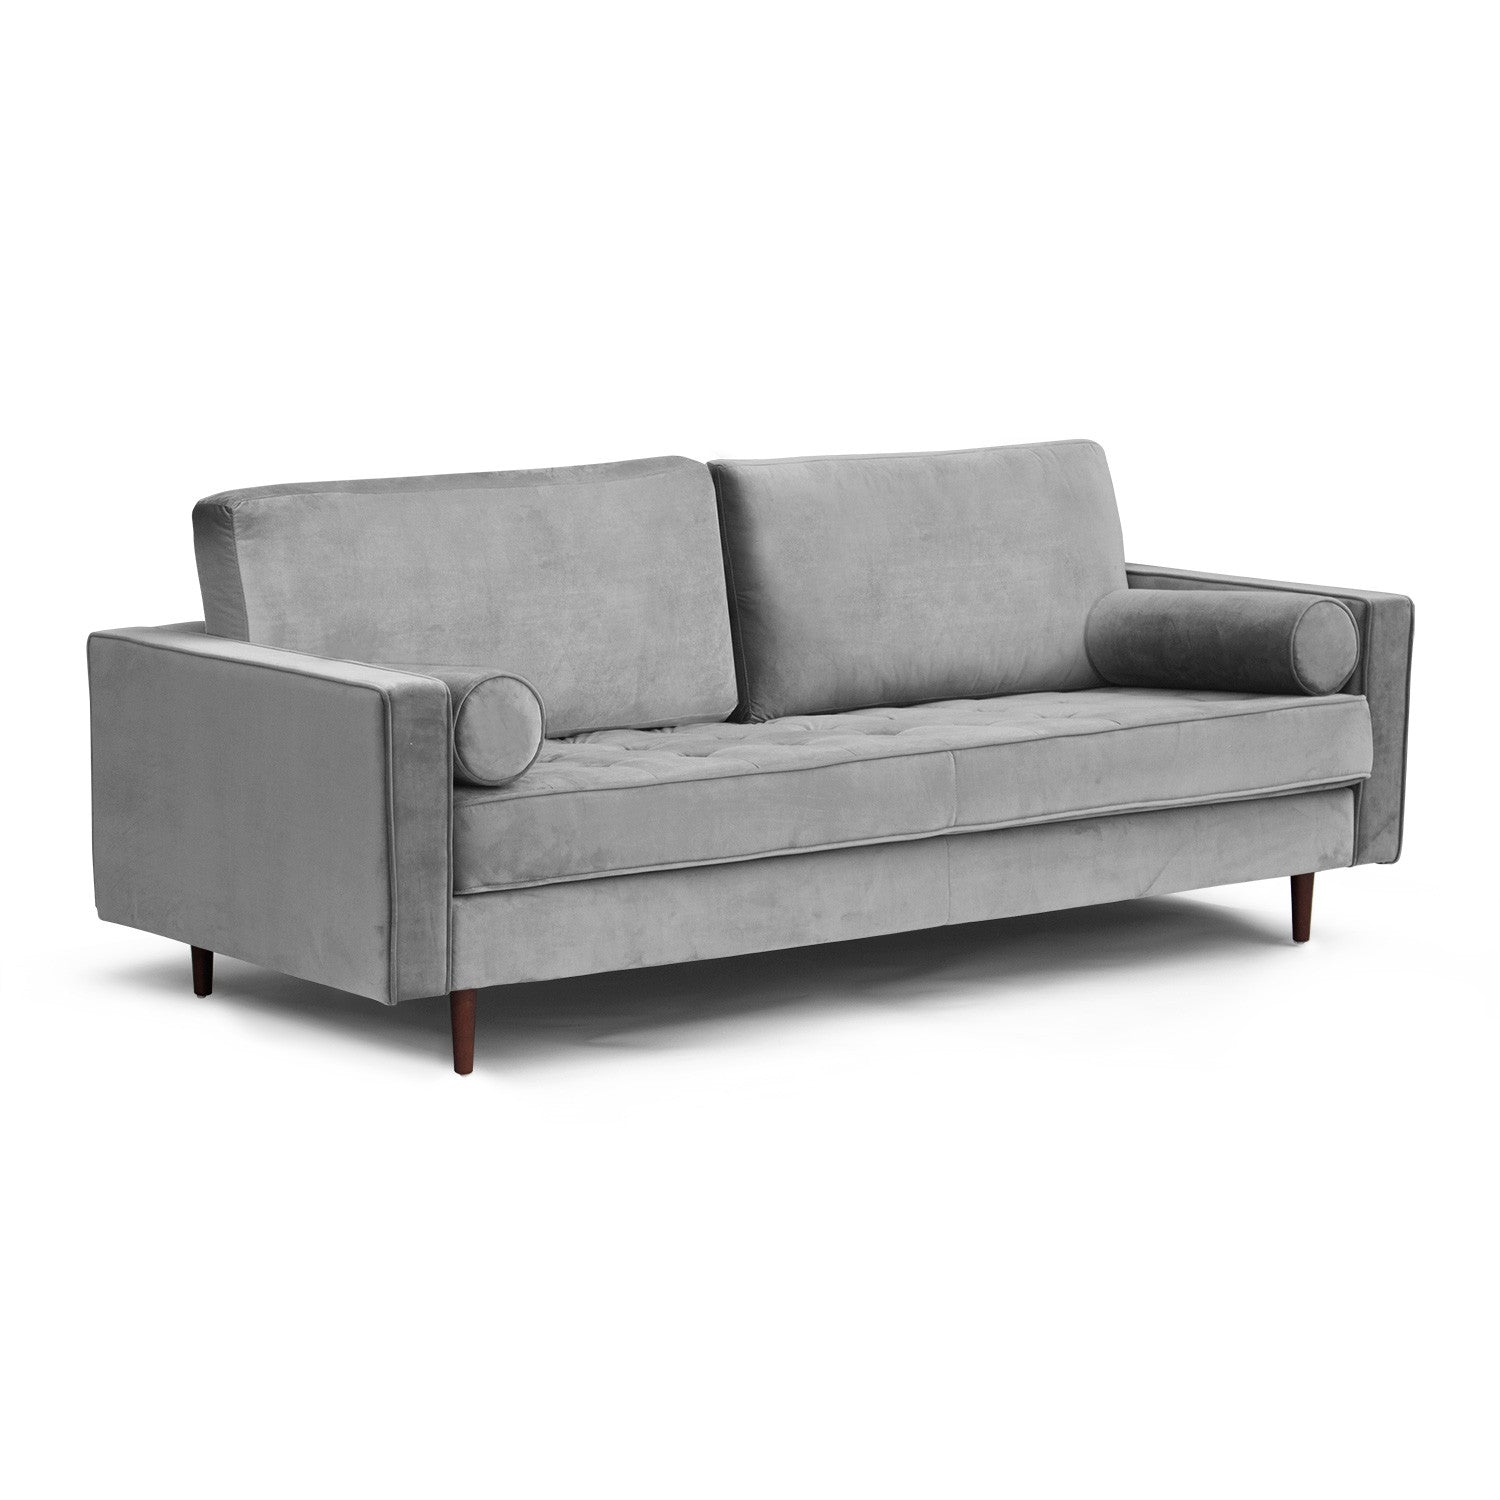 Mid Century Modern Tufted Sofa with Bolster Pillows | Mod House